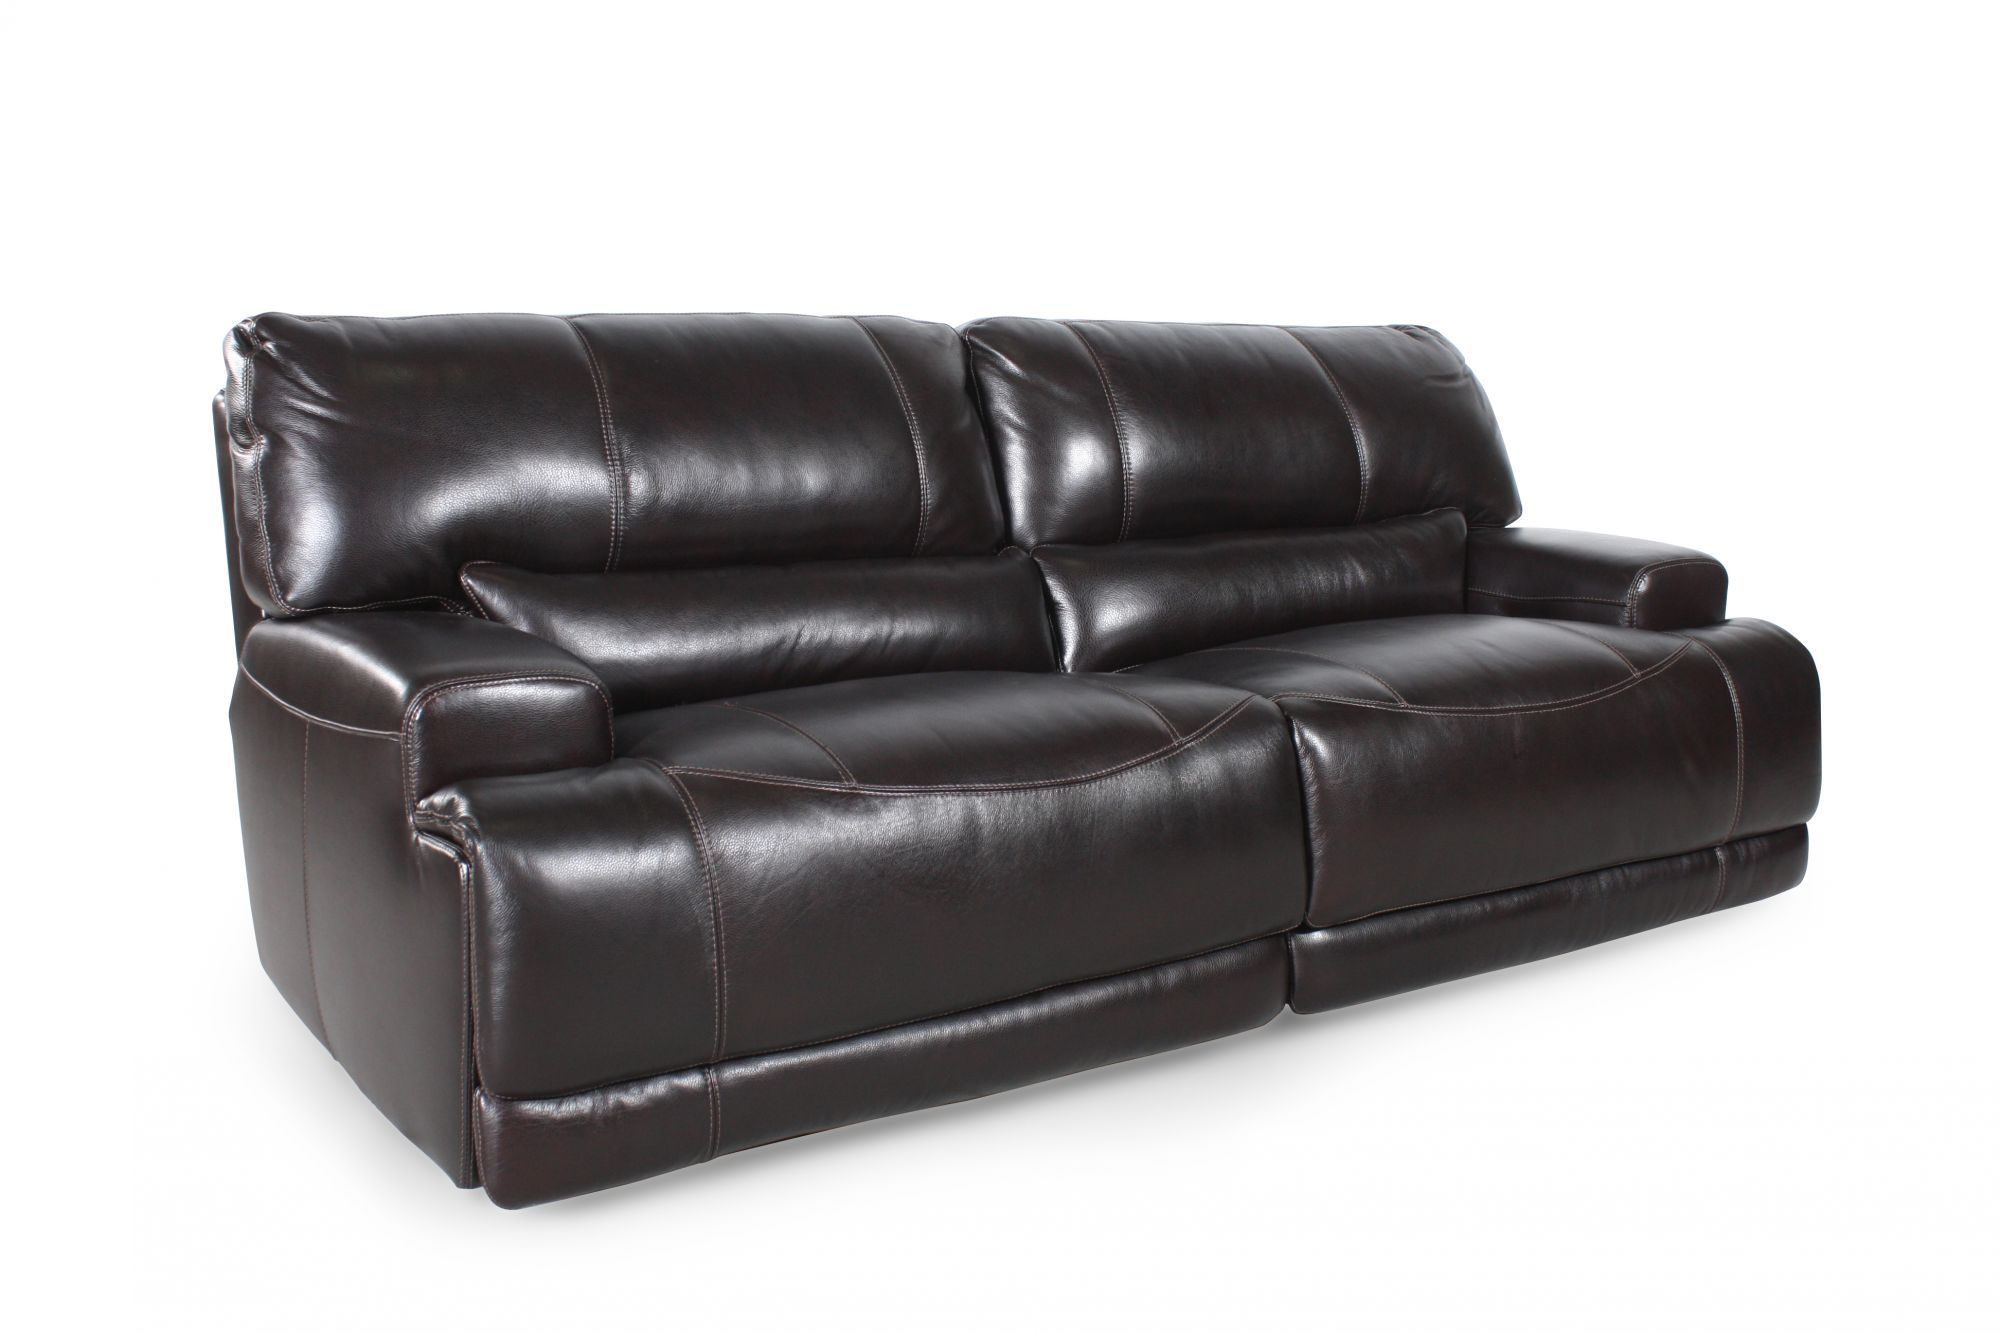 Simon Li Leather Longhorn Blackberry Sofa New House